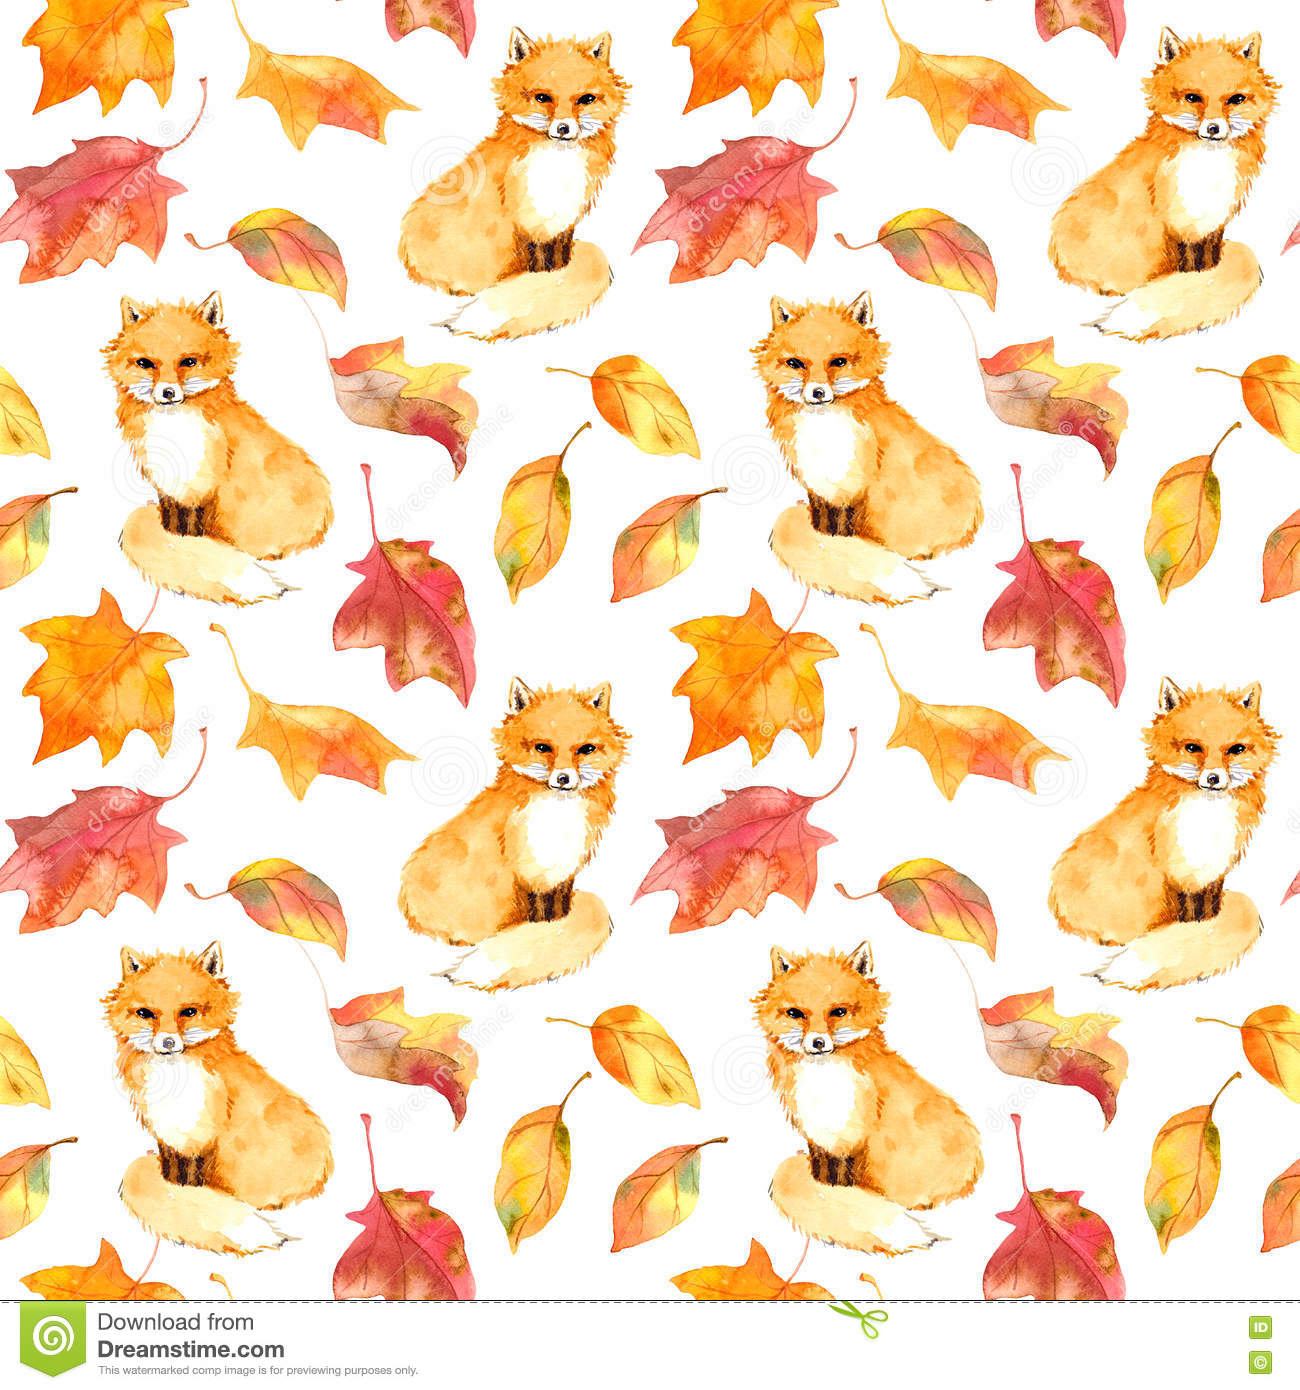 Cell Wallpaper Hd Illustration Fall Autumn Pattern Cute Fox Animal Red Leaves Seamless